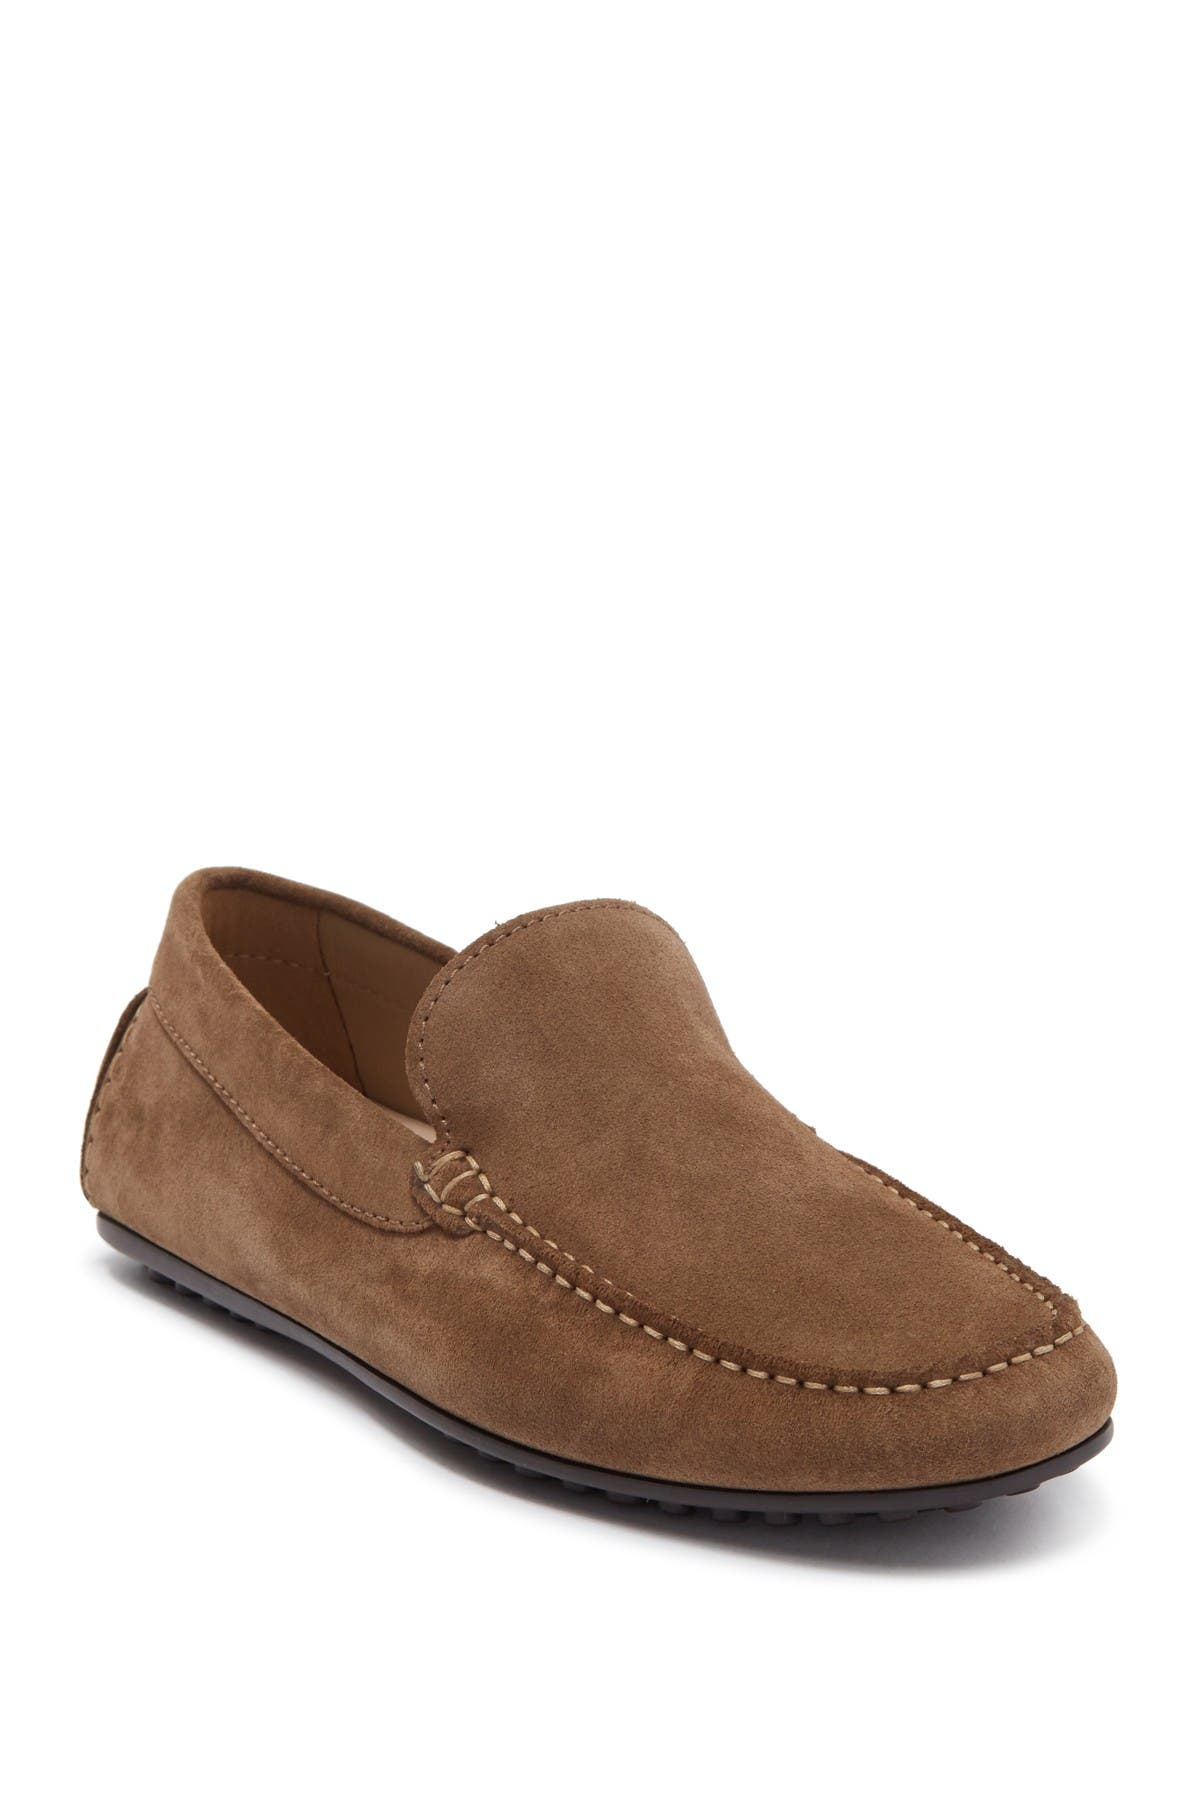 Image of MORAL CODE Saul Suede Driving Loafer